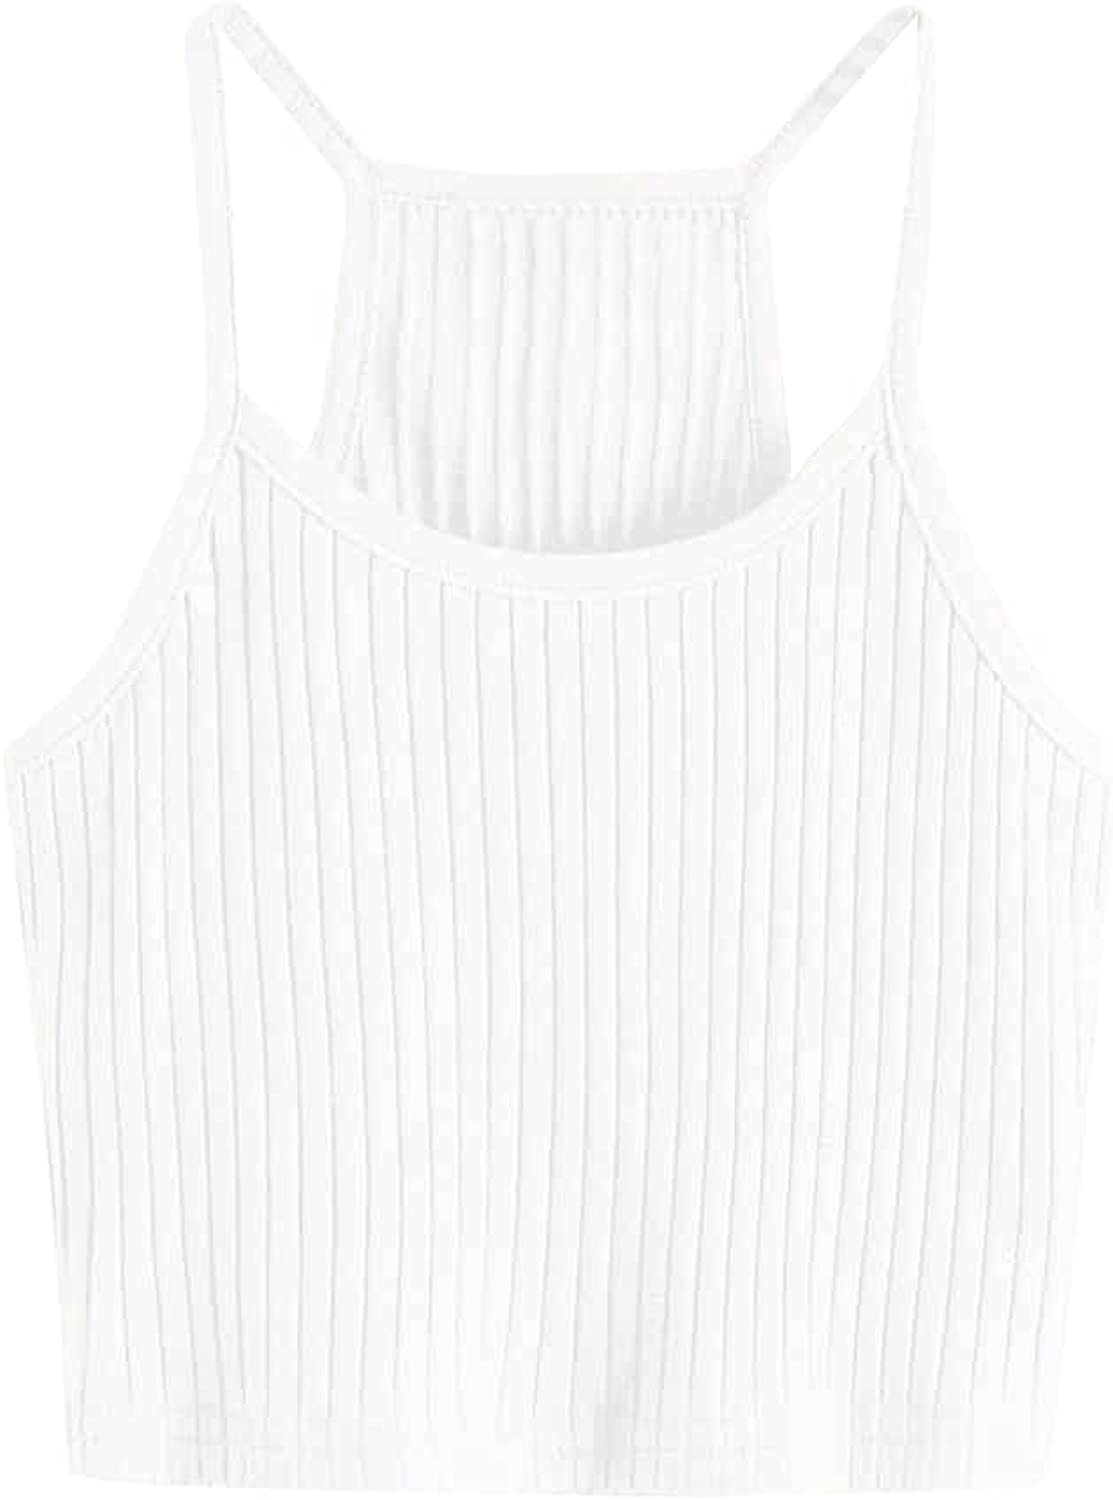 SOLY HUX Girl's Spaghetti Strap Ribbed Knit Racerback Crop Cami Top